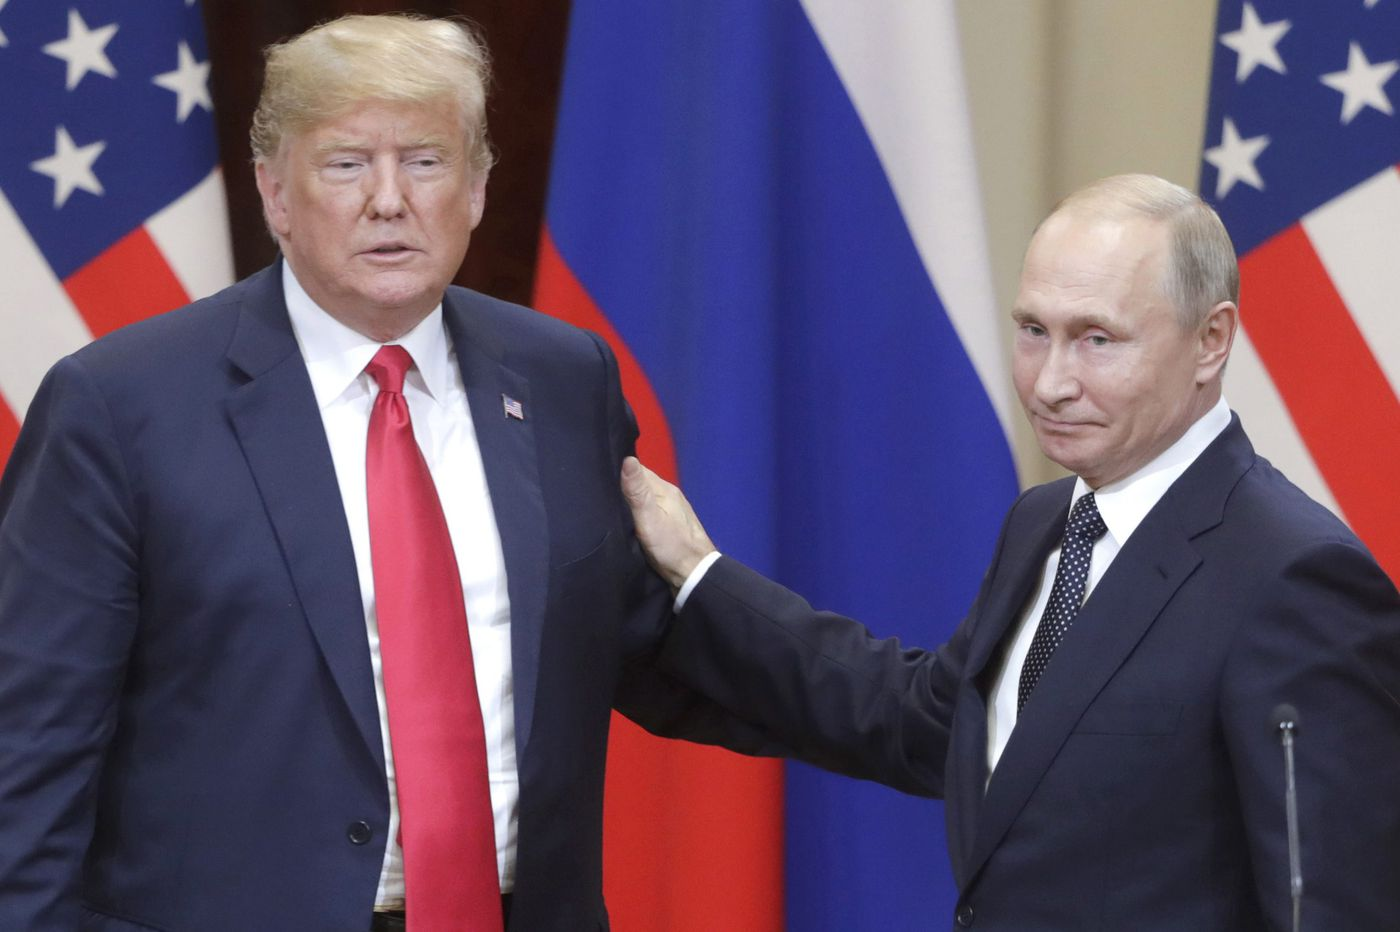 The crazy new evidence that Trump's Russia problem is far worse than we all thought | Will Bunch